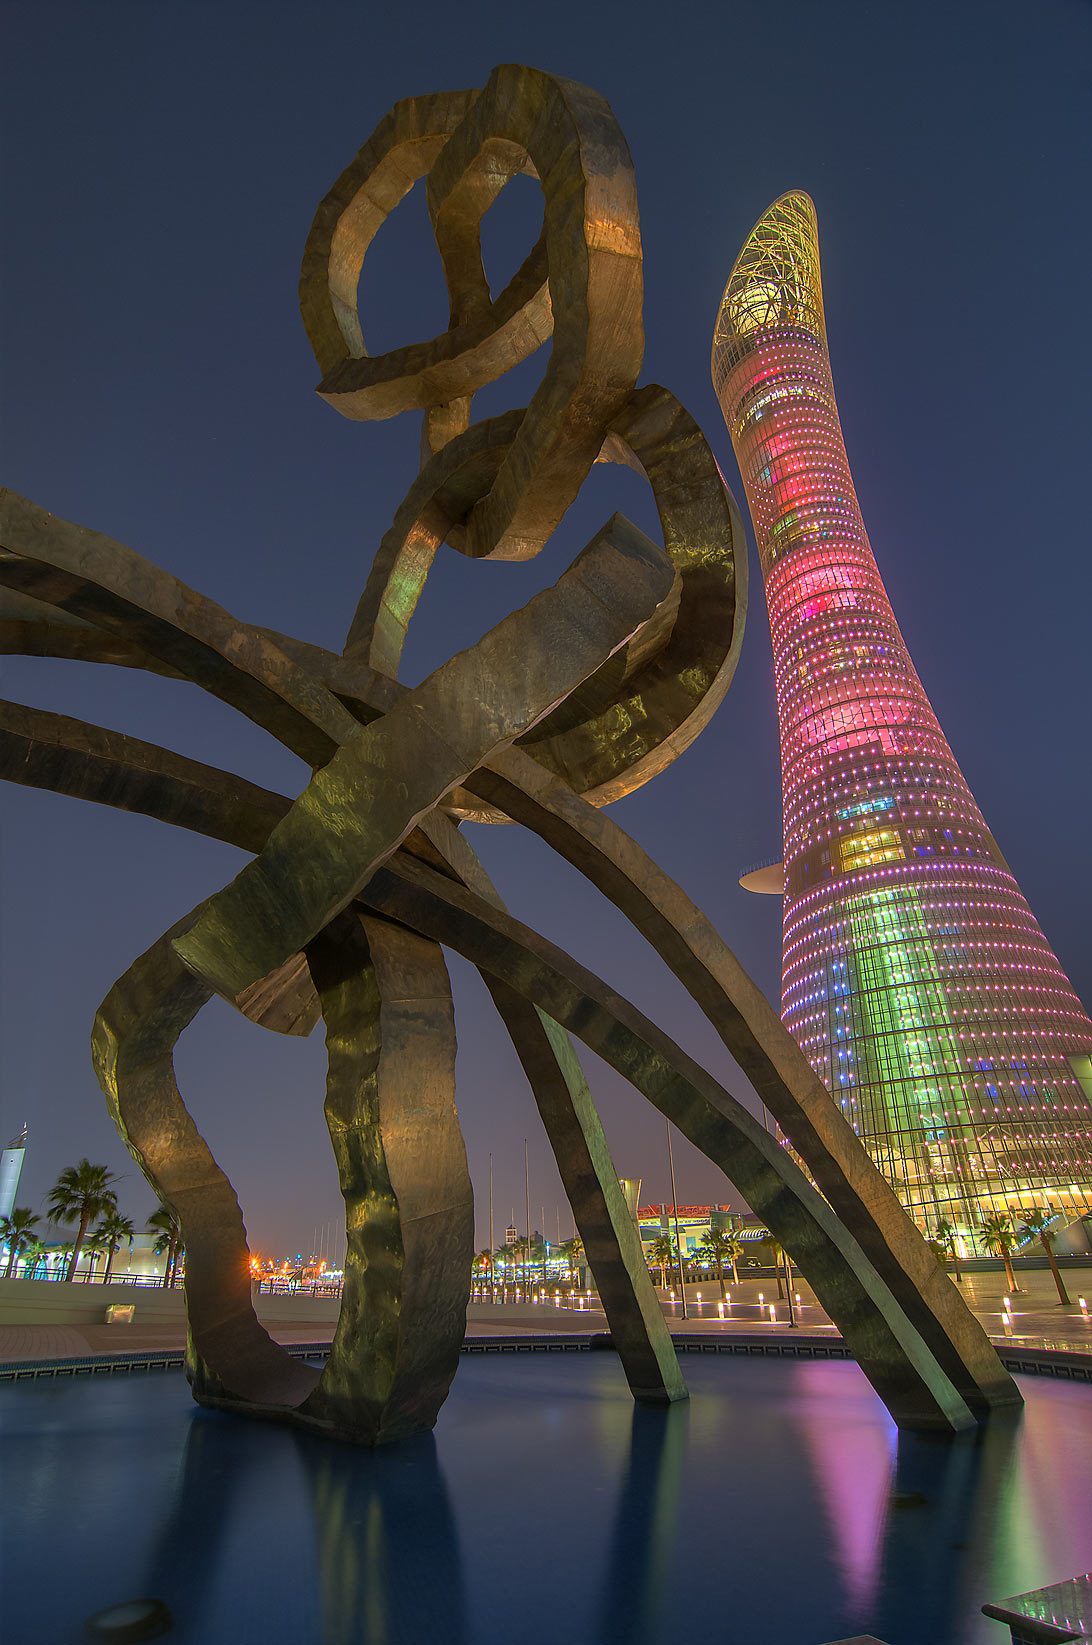 Olympic rings and Torch Tower sculpture in Aspire Zone at evening. Doha, Qatar